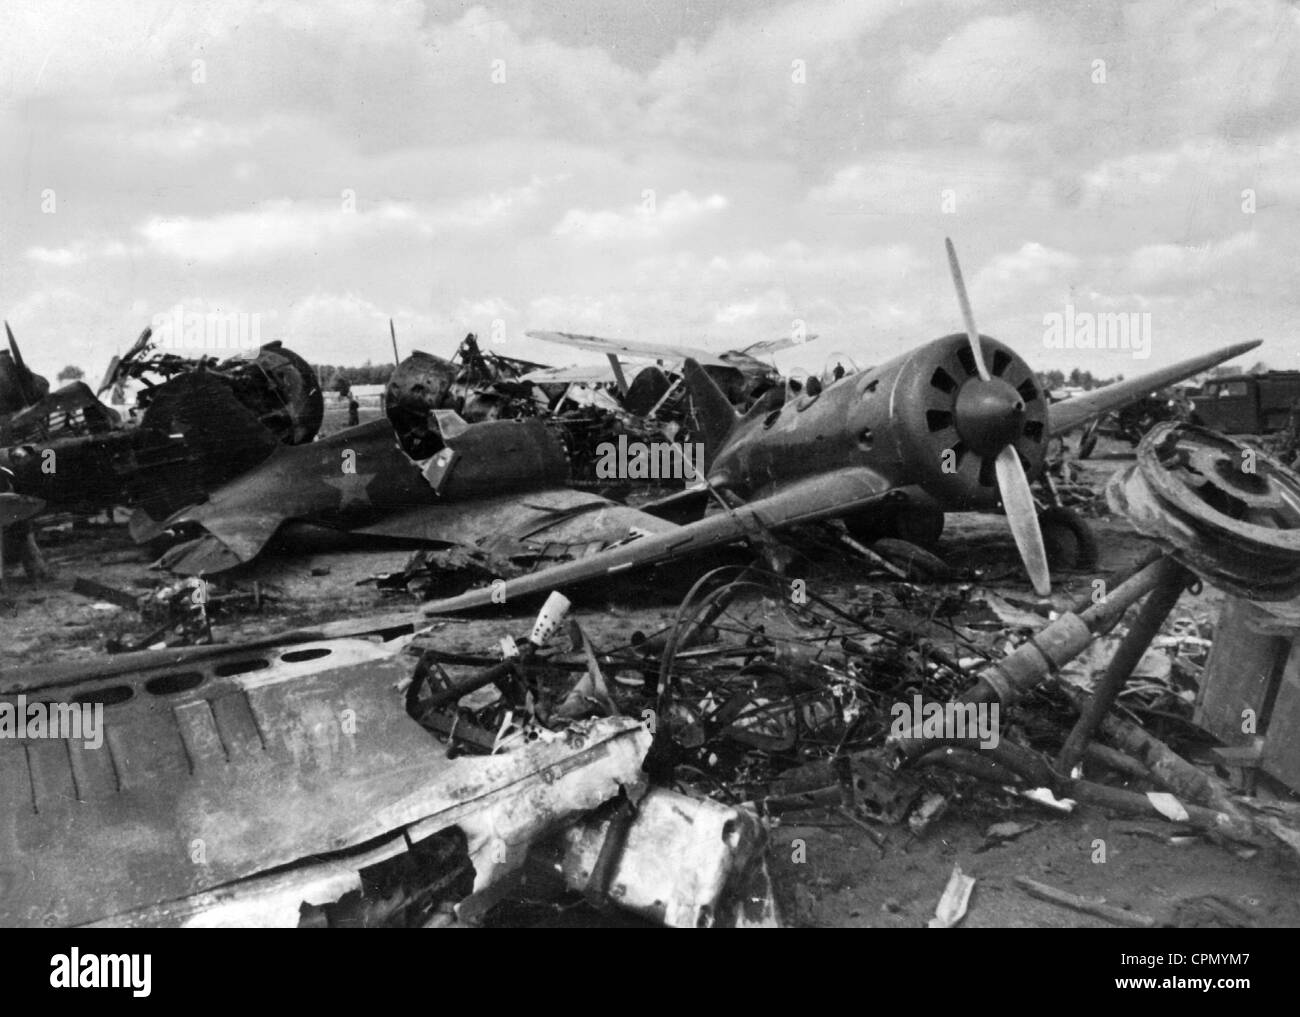 Destroyed Soviet Fighter Planes at the Beginning of the Russian Campaign, 1941 - Stock Image